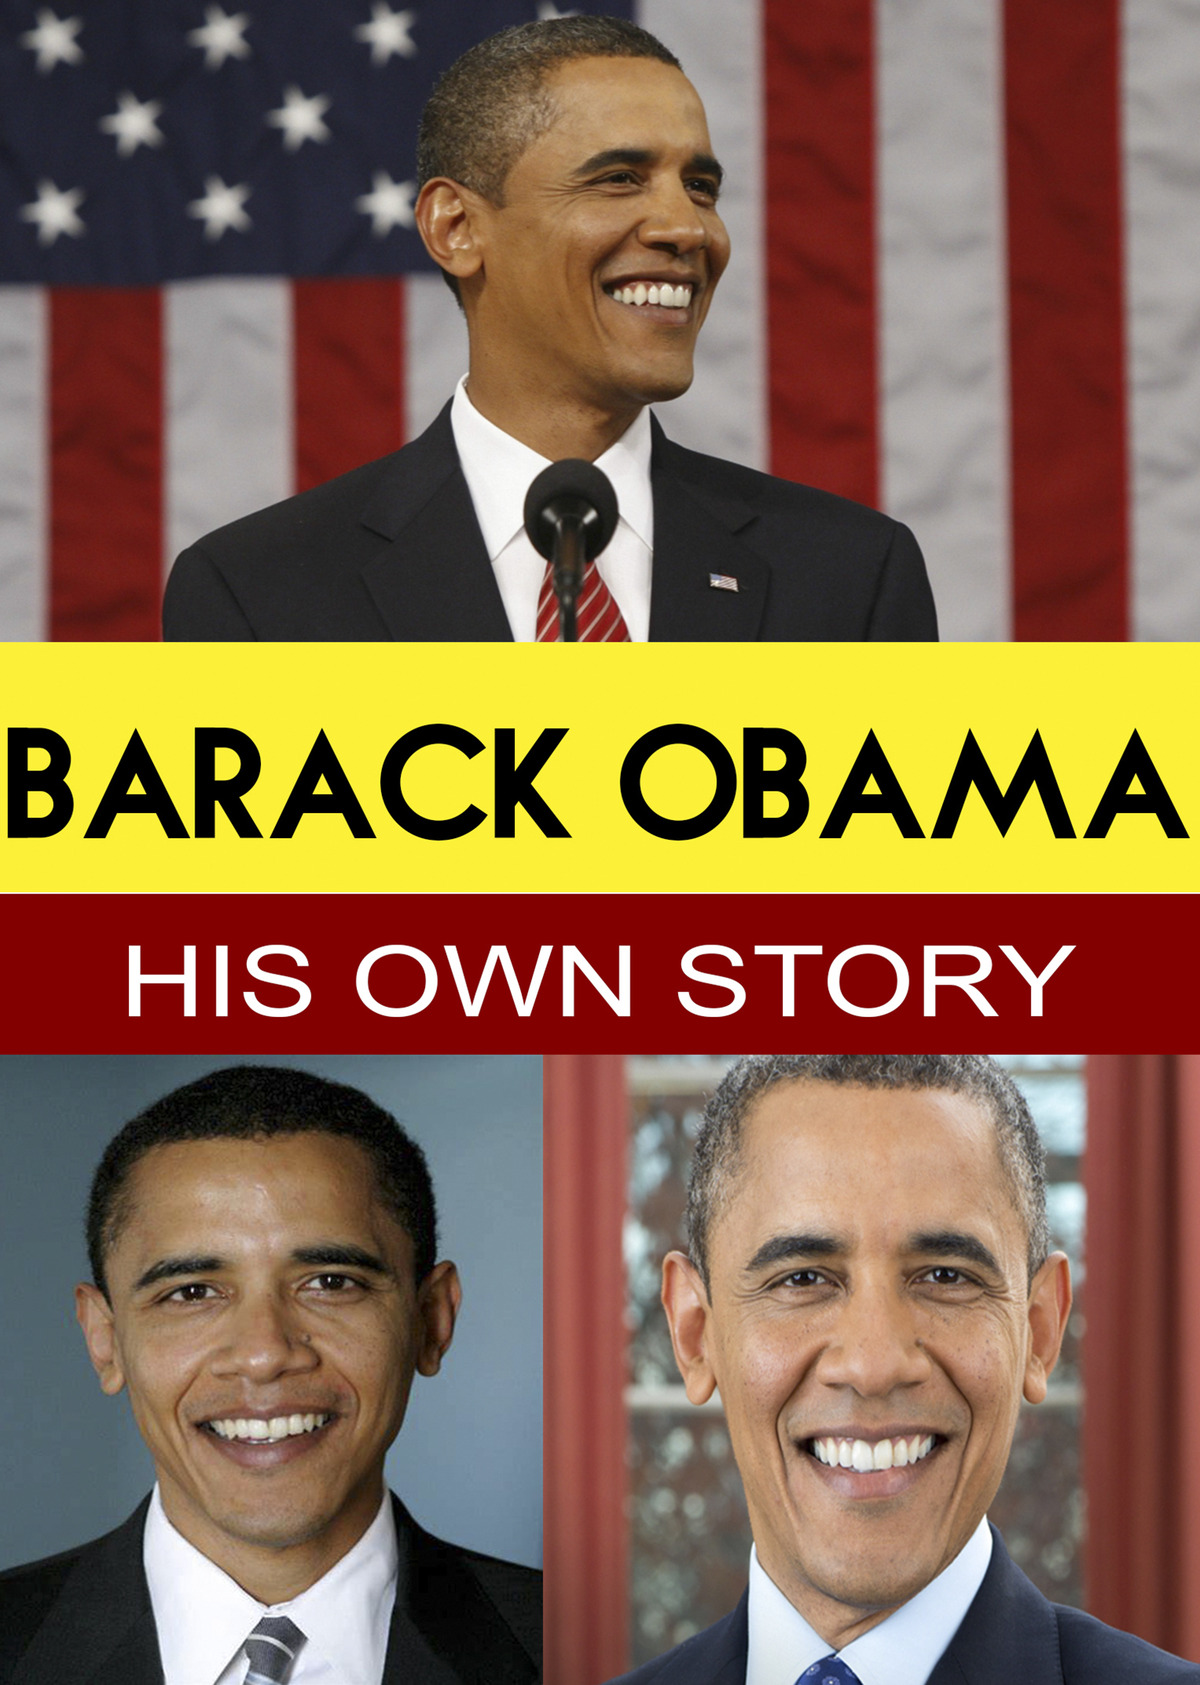 L7818 - Barack Obama - His Own Story